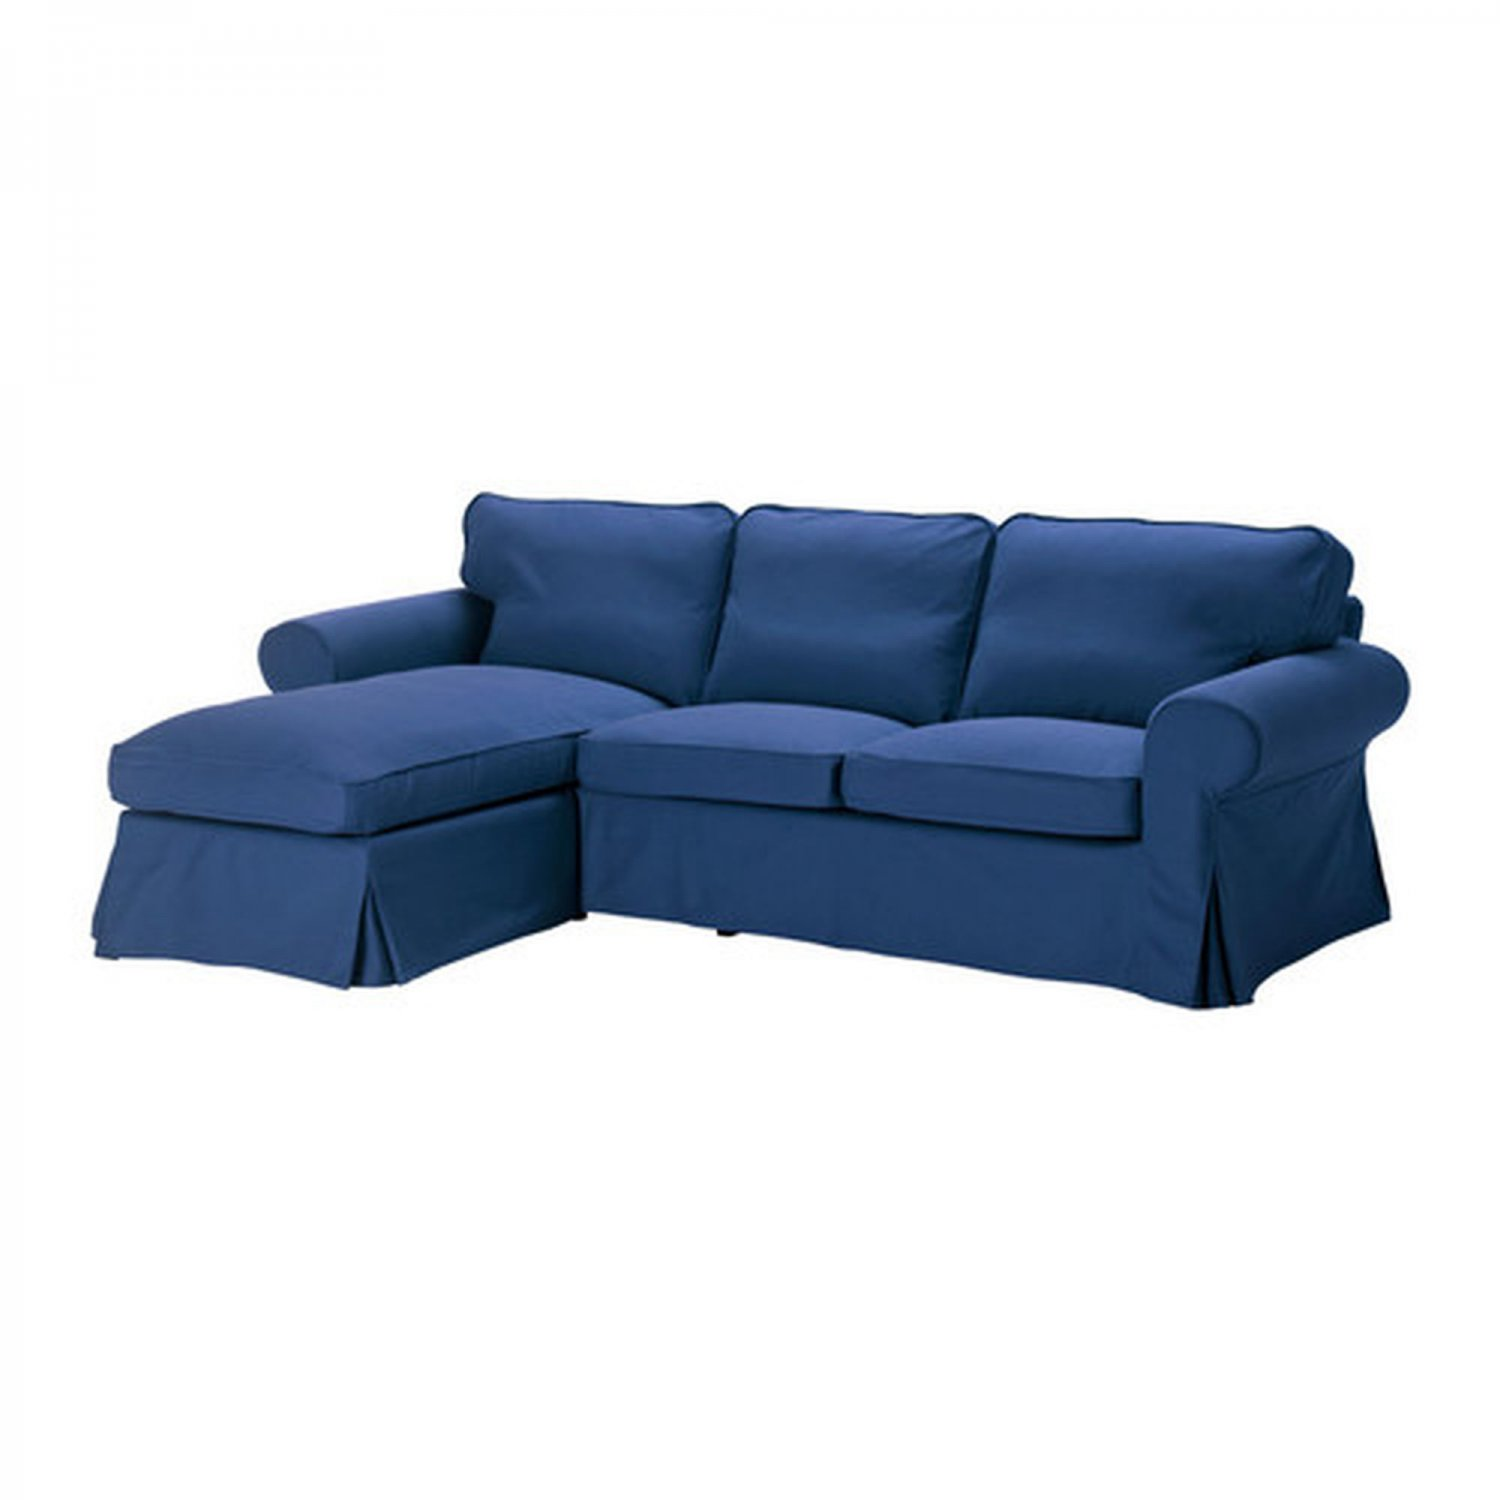 sofa bed chaise lounge ikea armless sectional sofas small es ektorp loveseat with cover slipcover